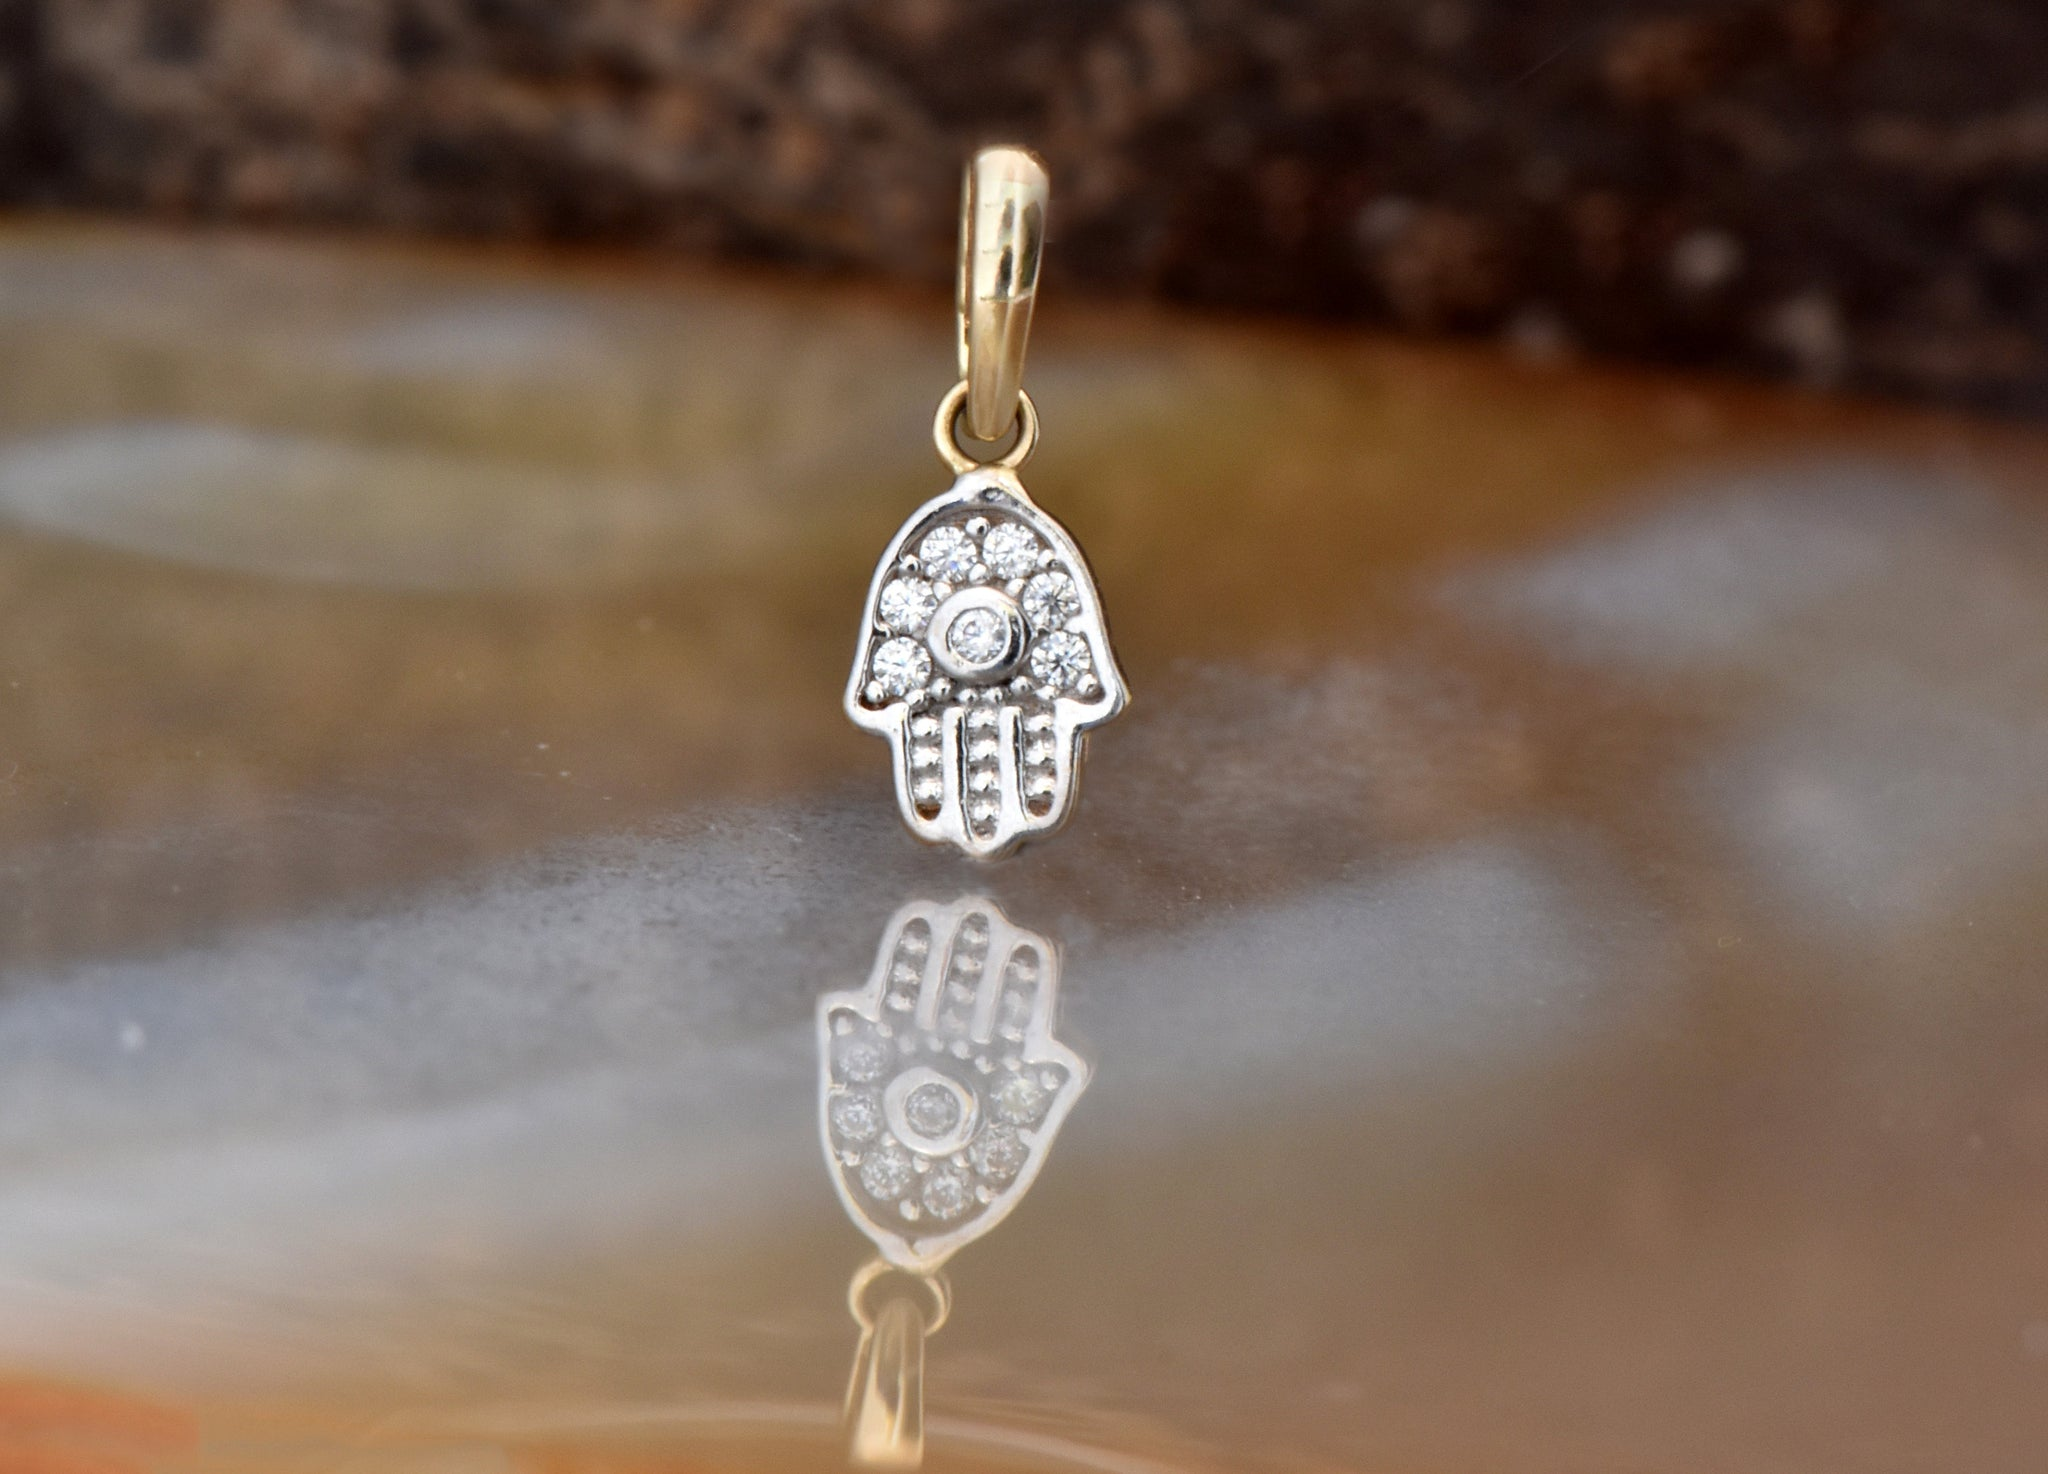 Hamsa Hand Necklace-Protection Necklace-Minimalist Jewelry-Graduation gift-Bat mitzvah gift